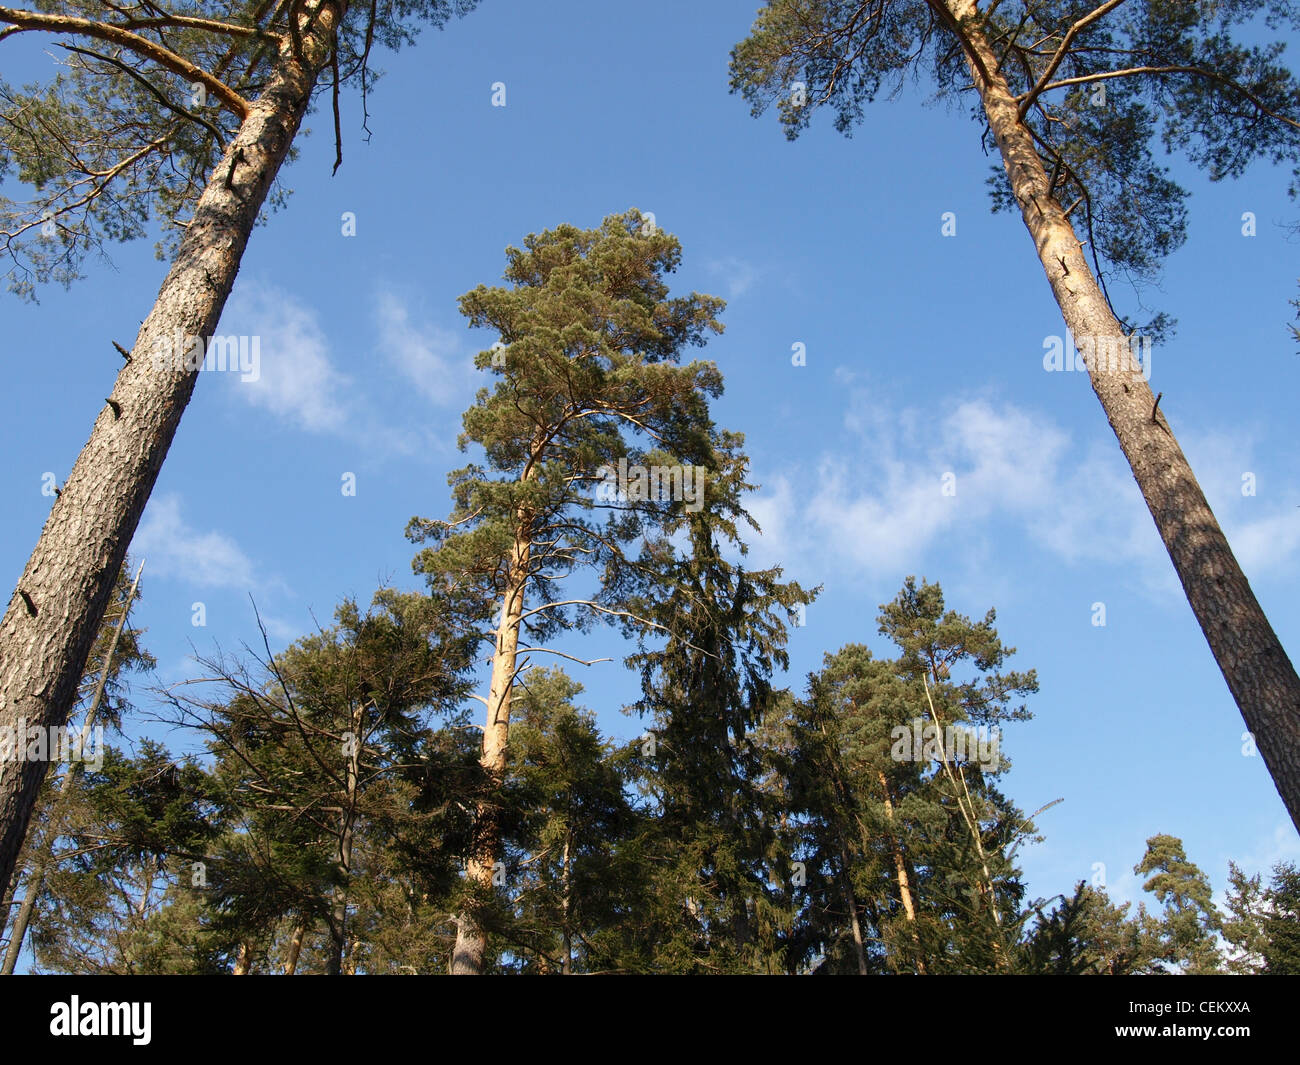 pine trees with sky and clouds / Kiefern mit Himmel und Wolken - Stock Image